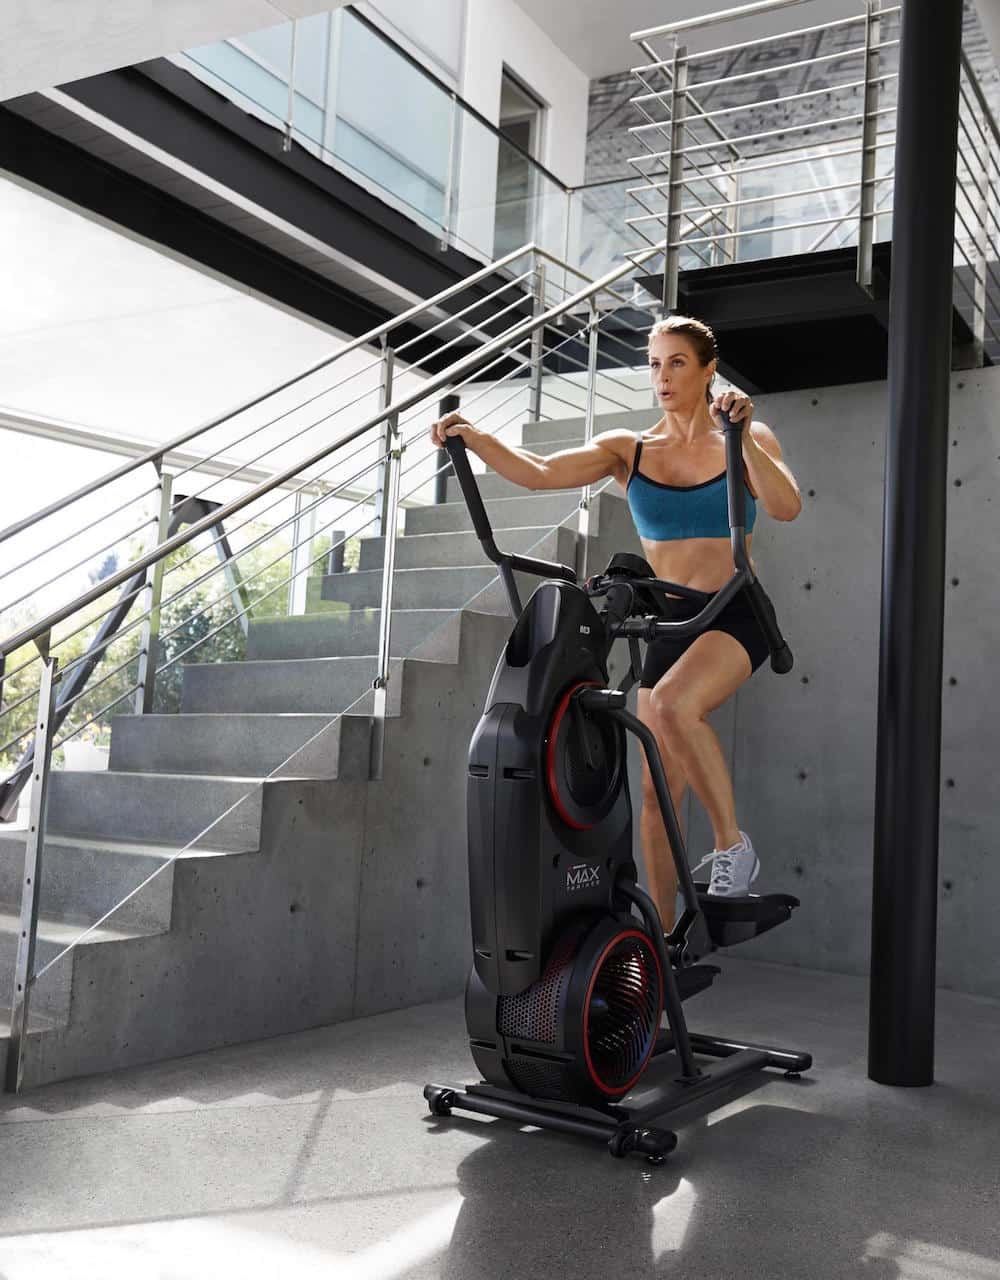 Bowflex Max Trainer Reviews For 2019 The Best Max